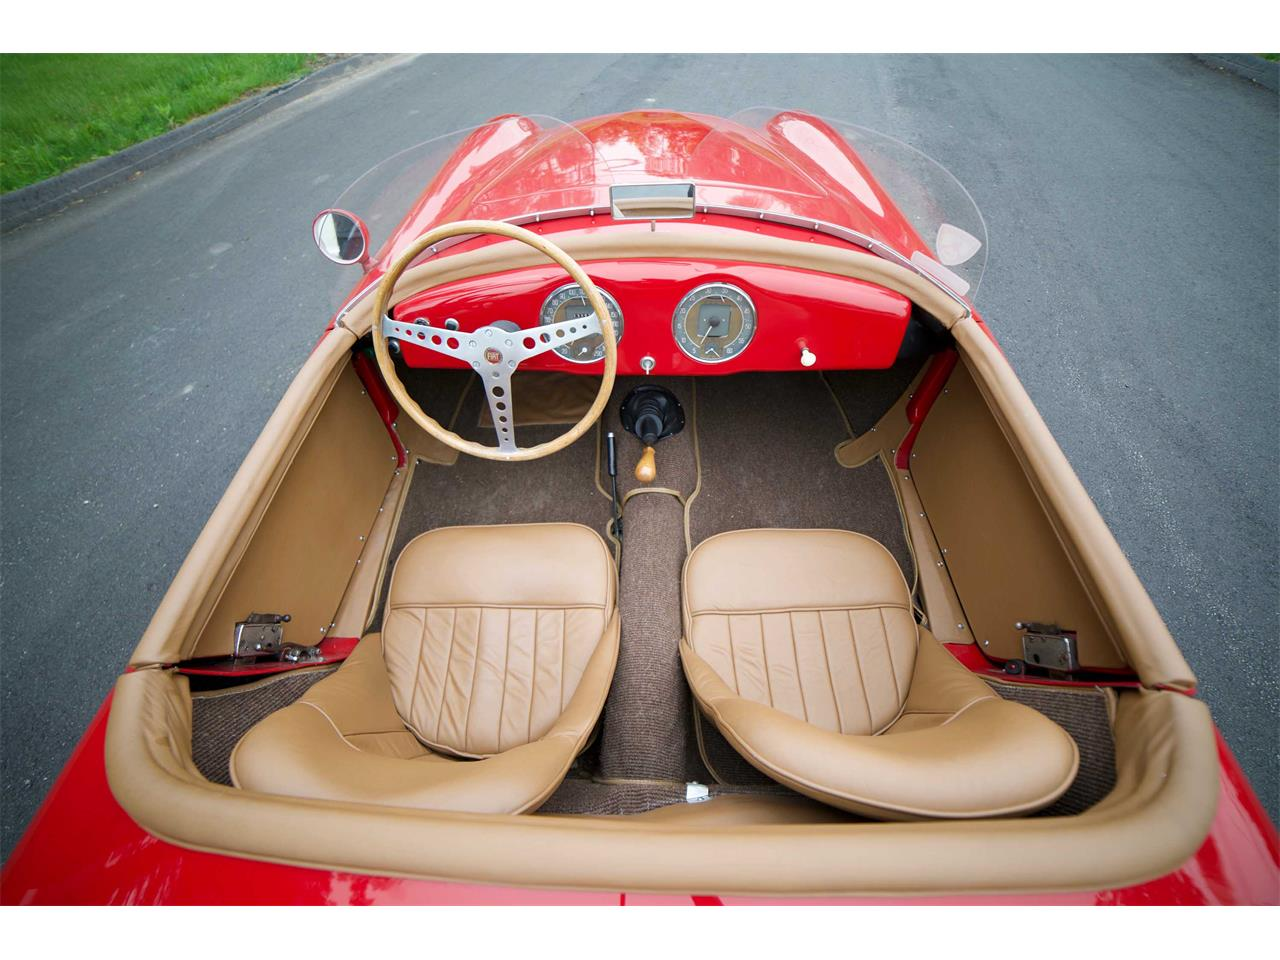 1951 Fiat Stanga Barchetta for sale in Westport, CT – photo 9